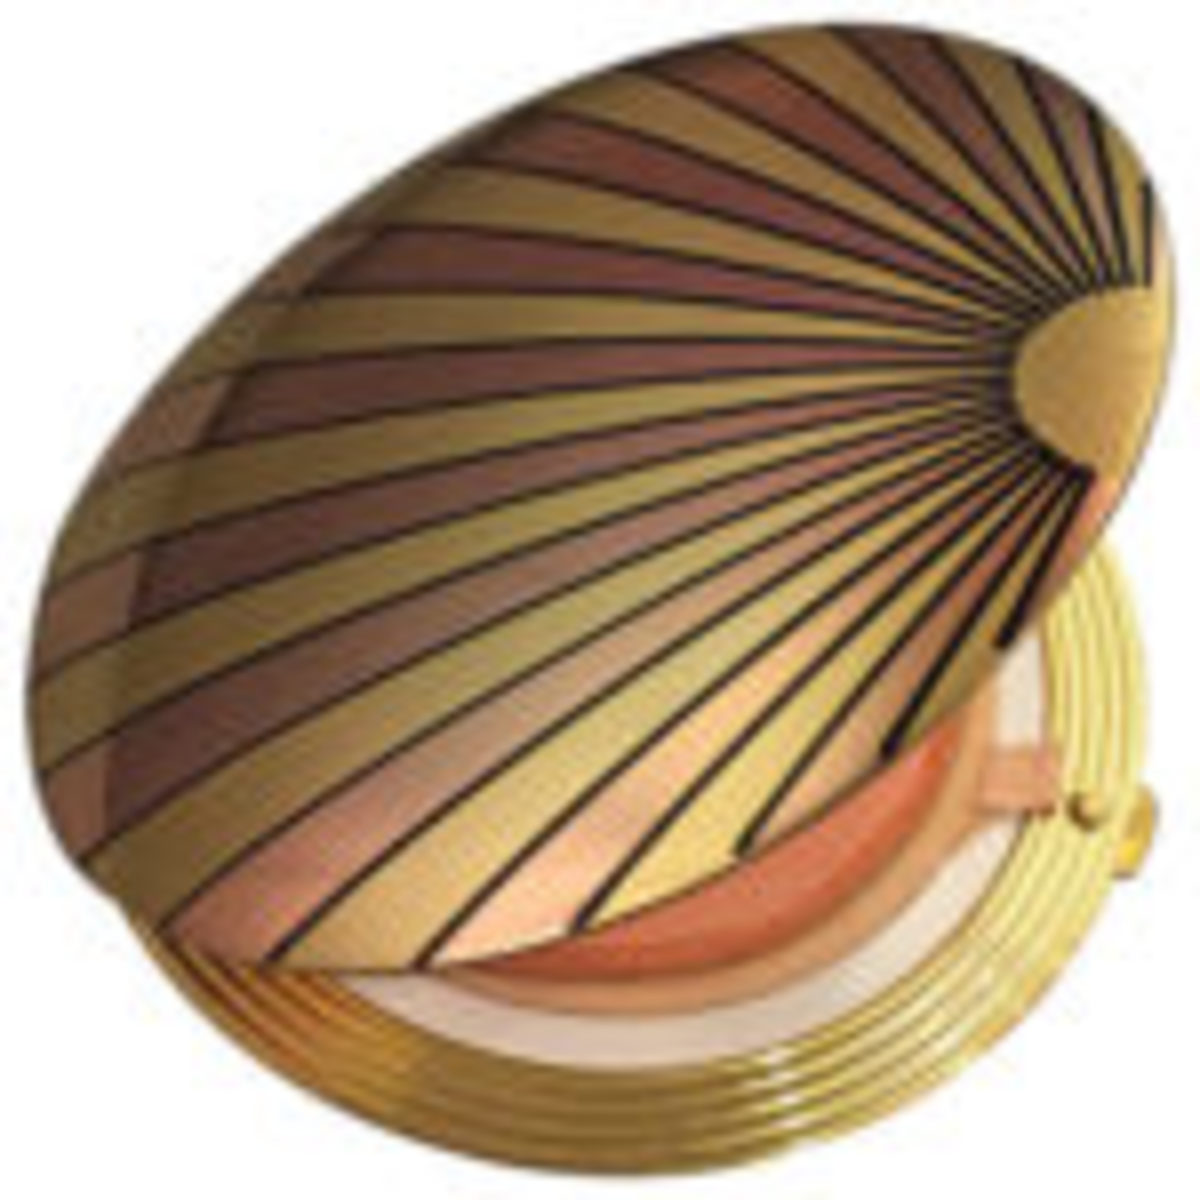 Art Deco-inspired, rose gold and brass sunray motif compact